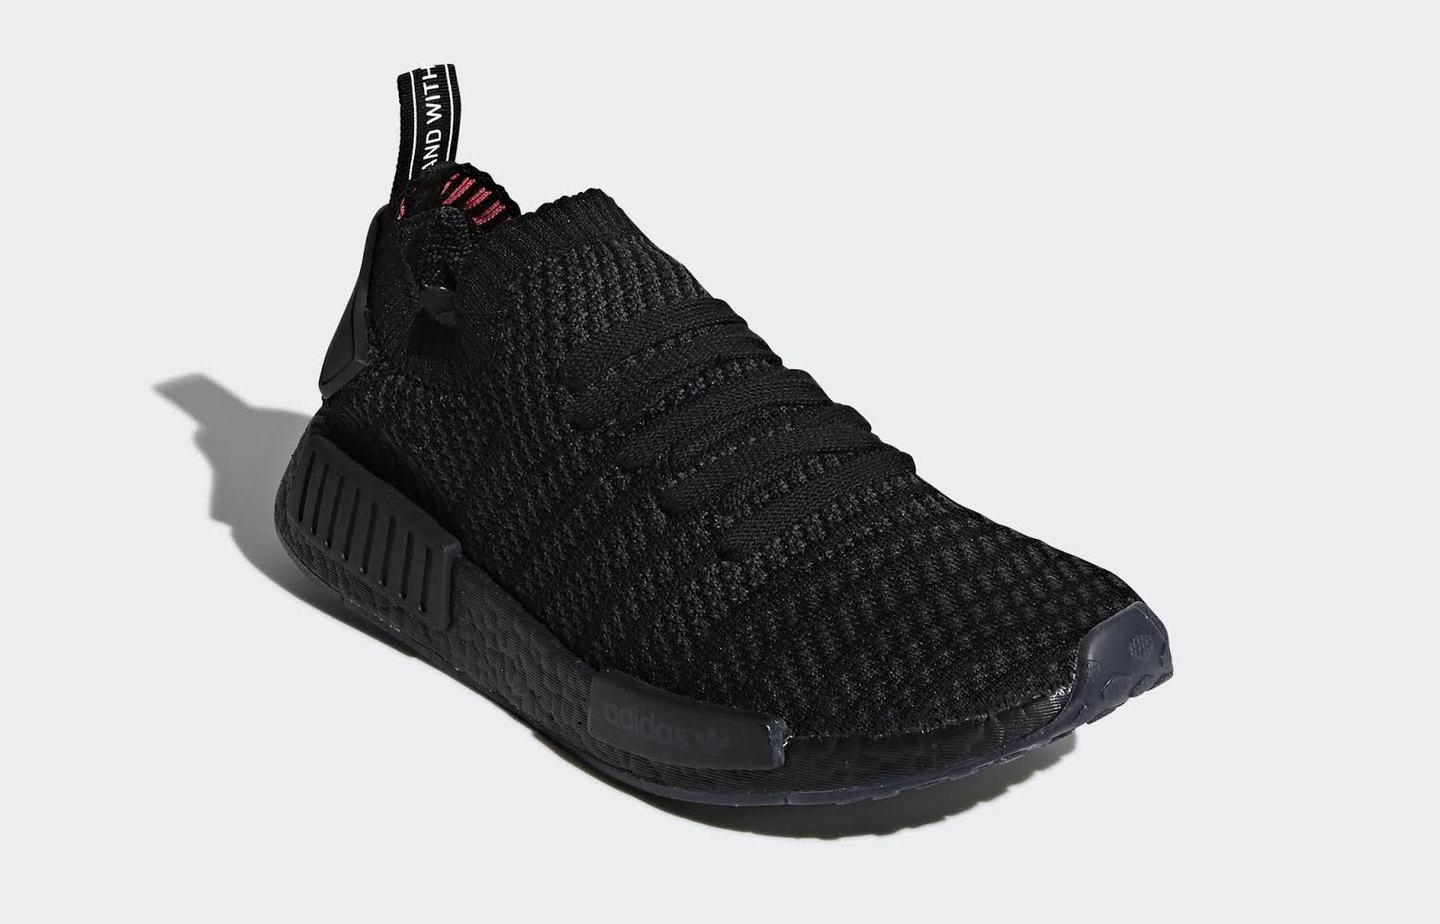 The recently released NMD STLT has yet to live up to it's full potential.  The original drop included several hot colorways that flew under the radar  as ...